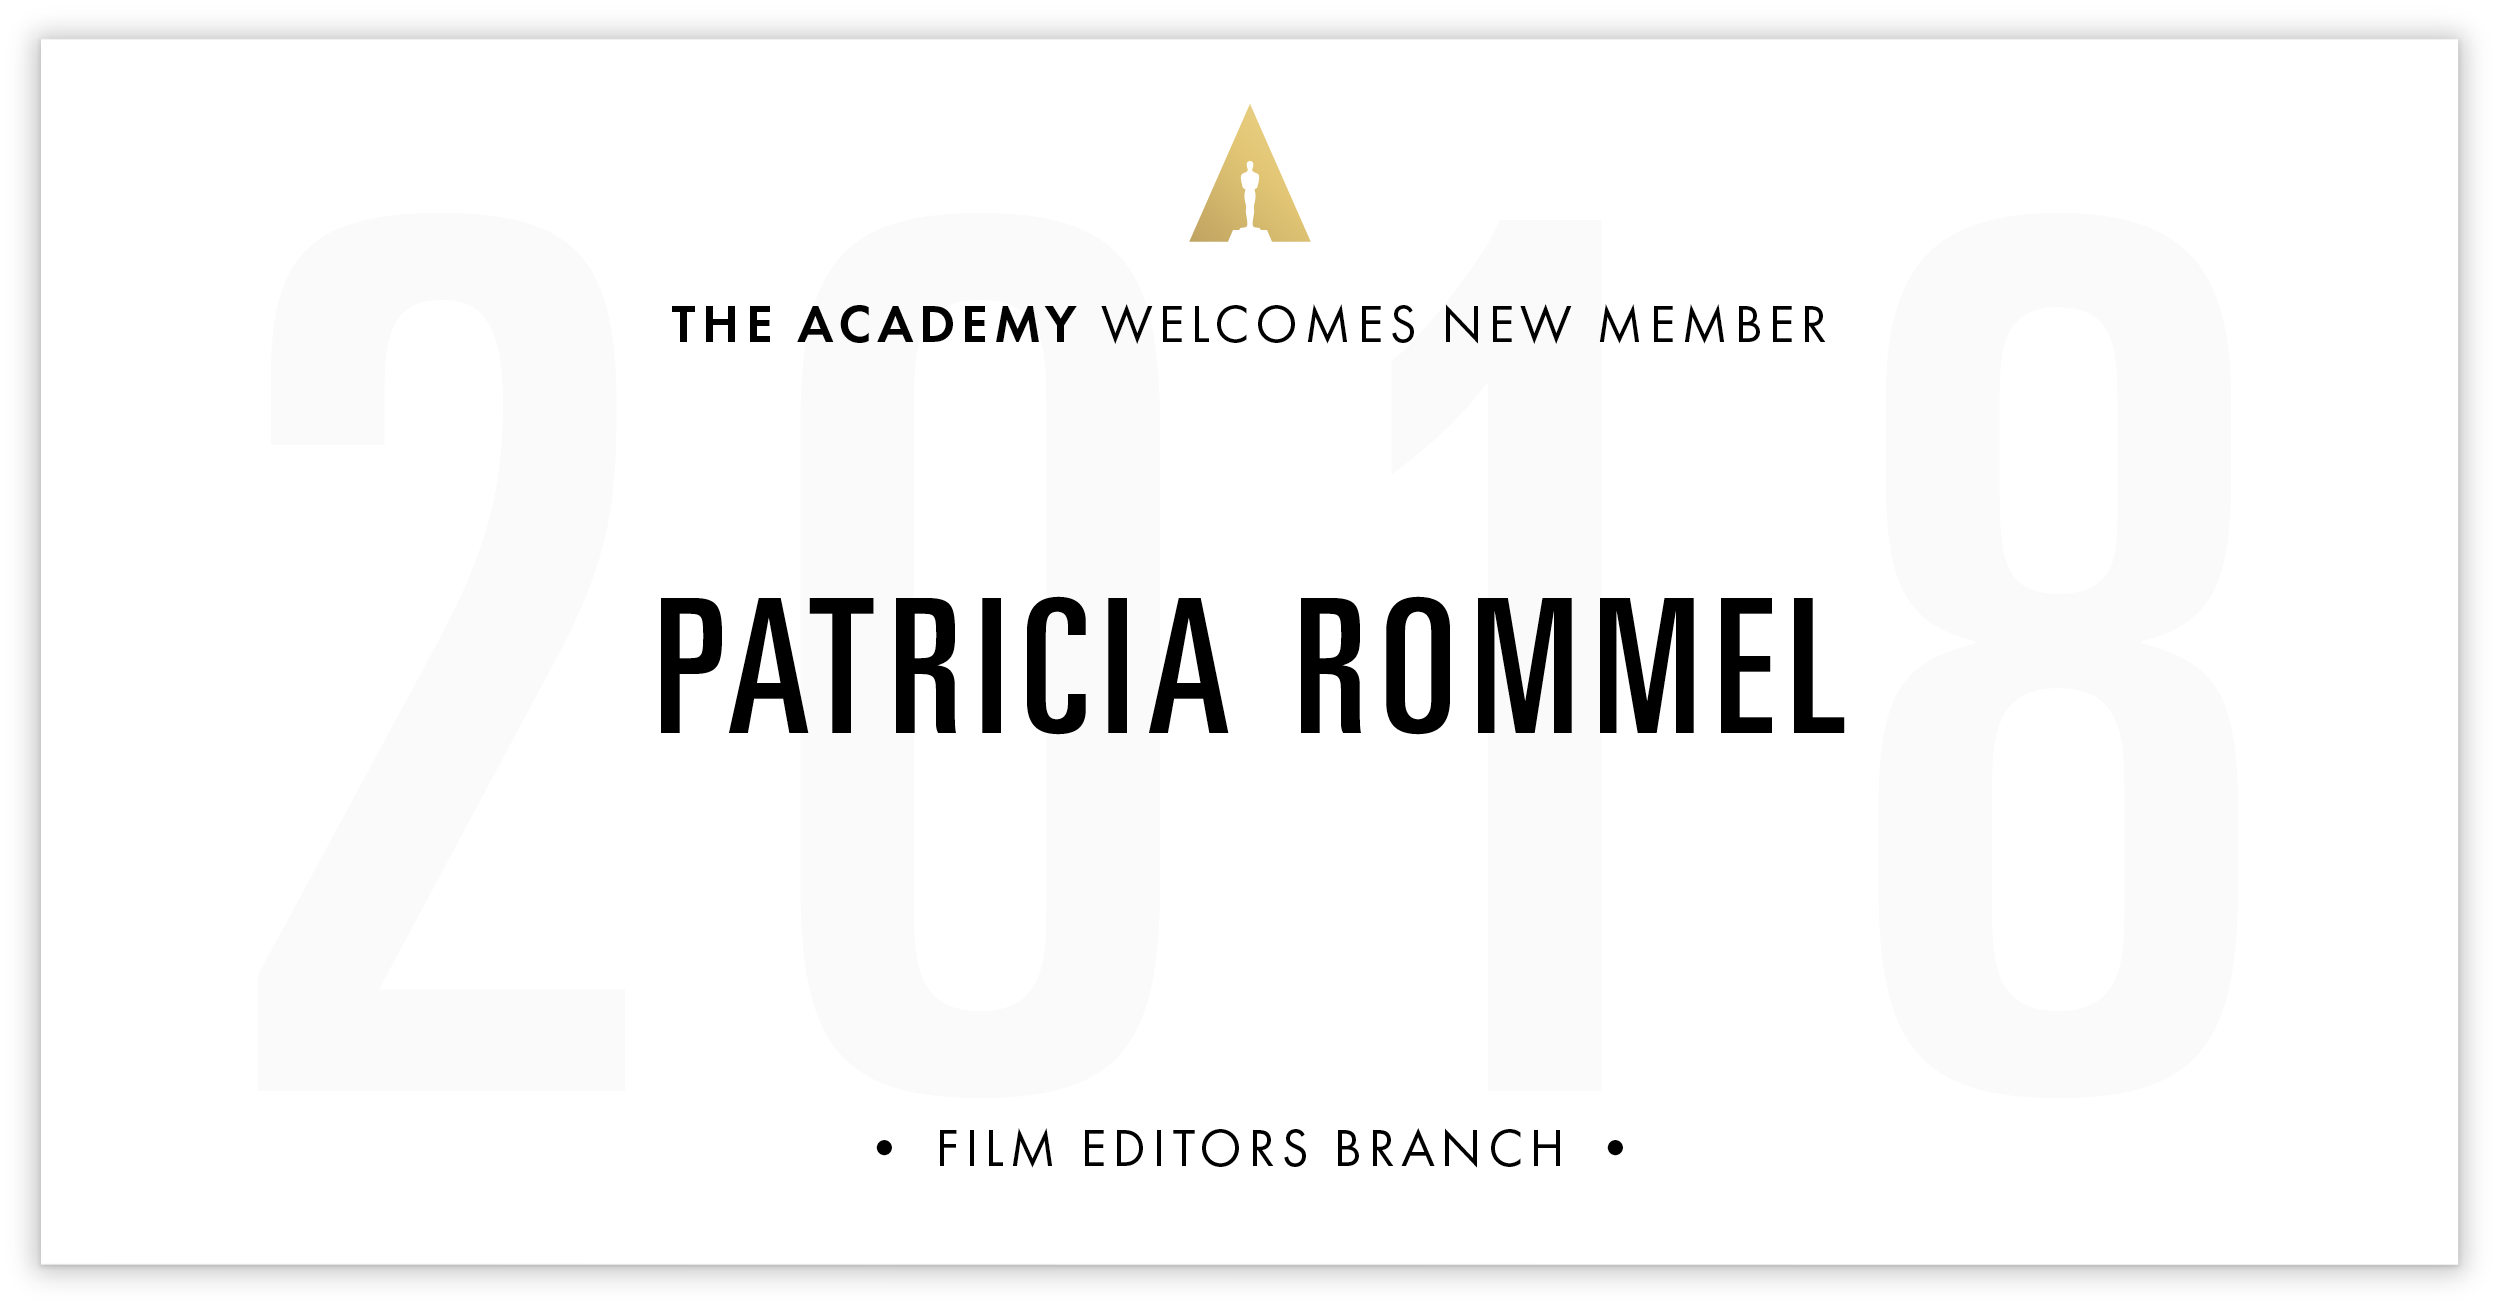 Patricia Rommel is invited!